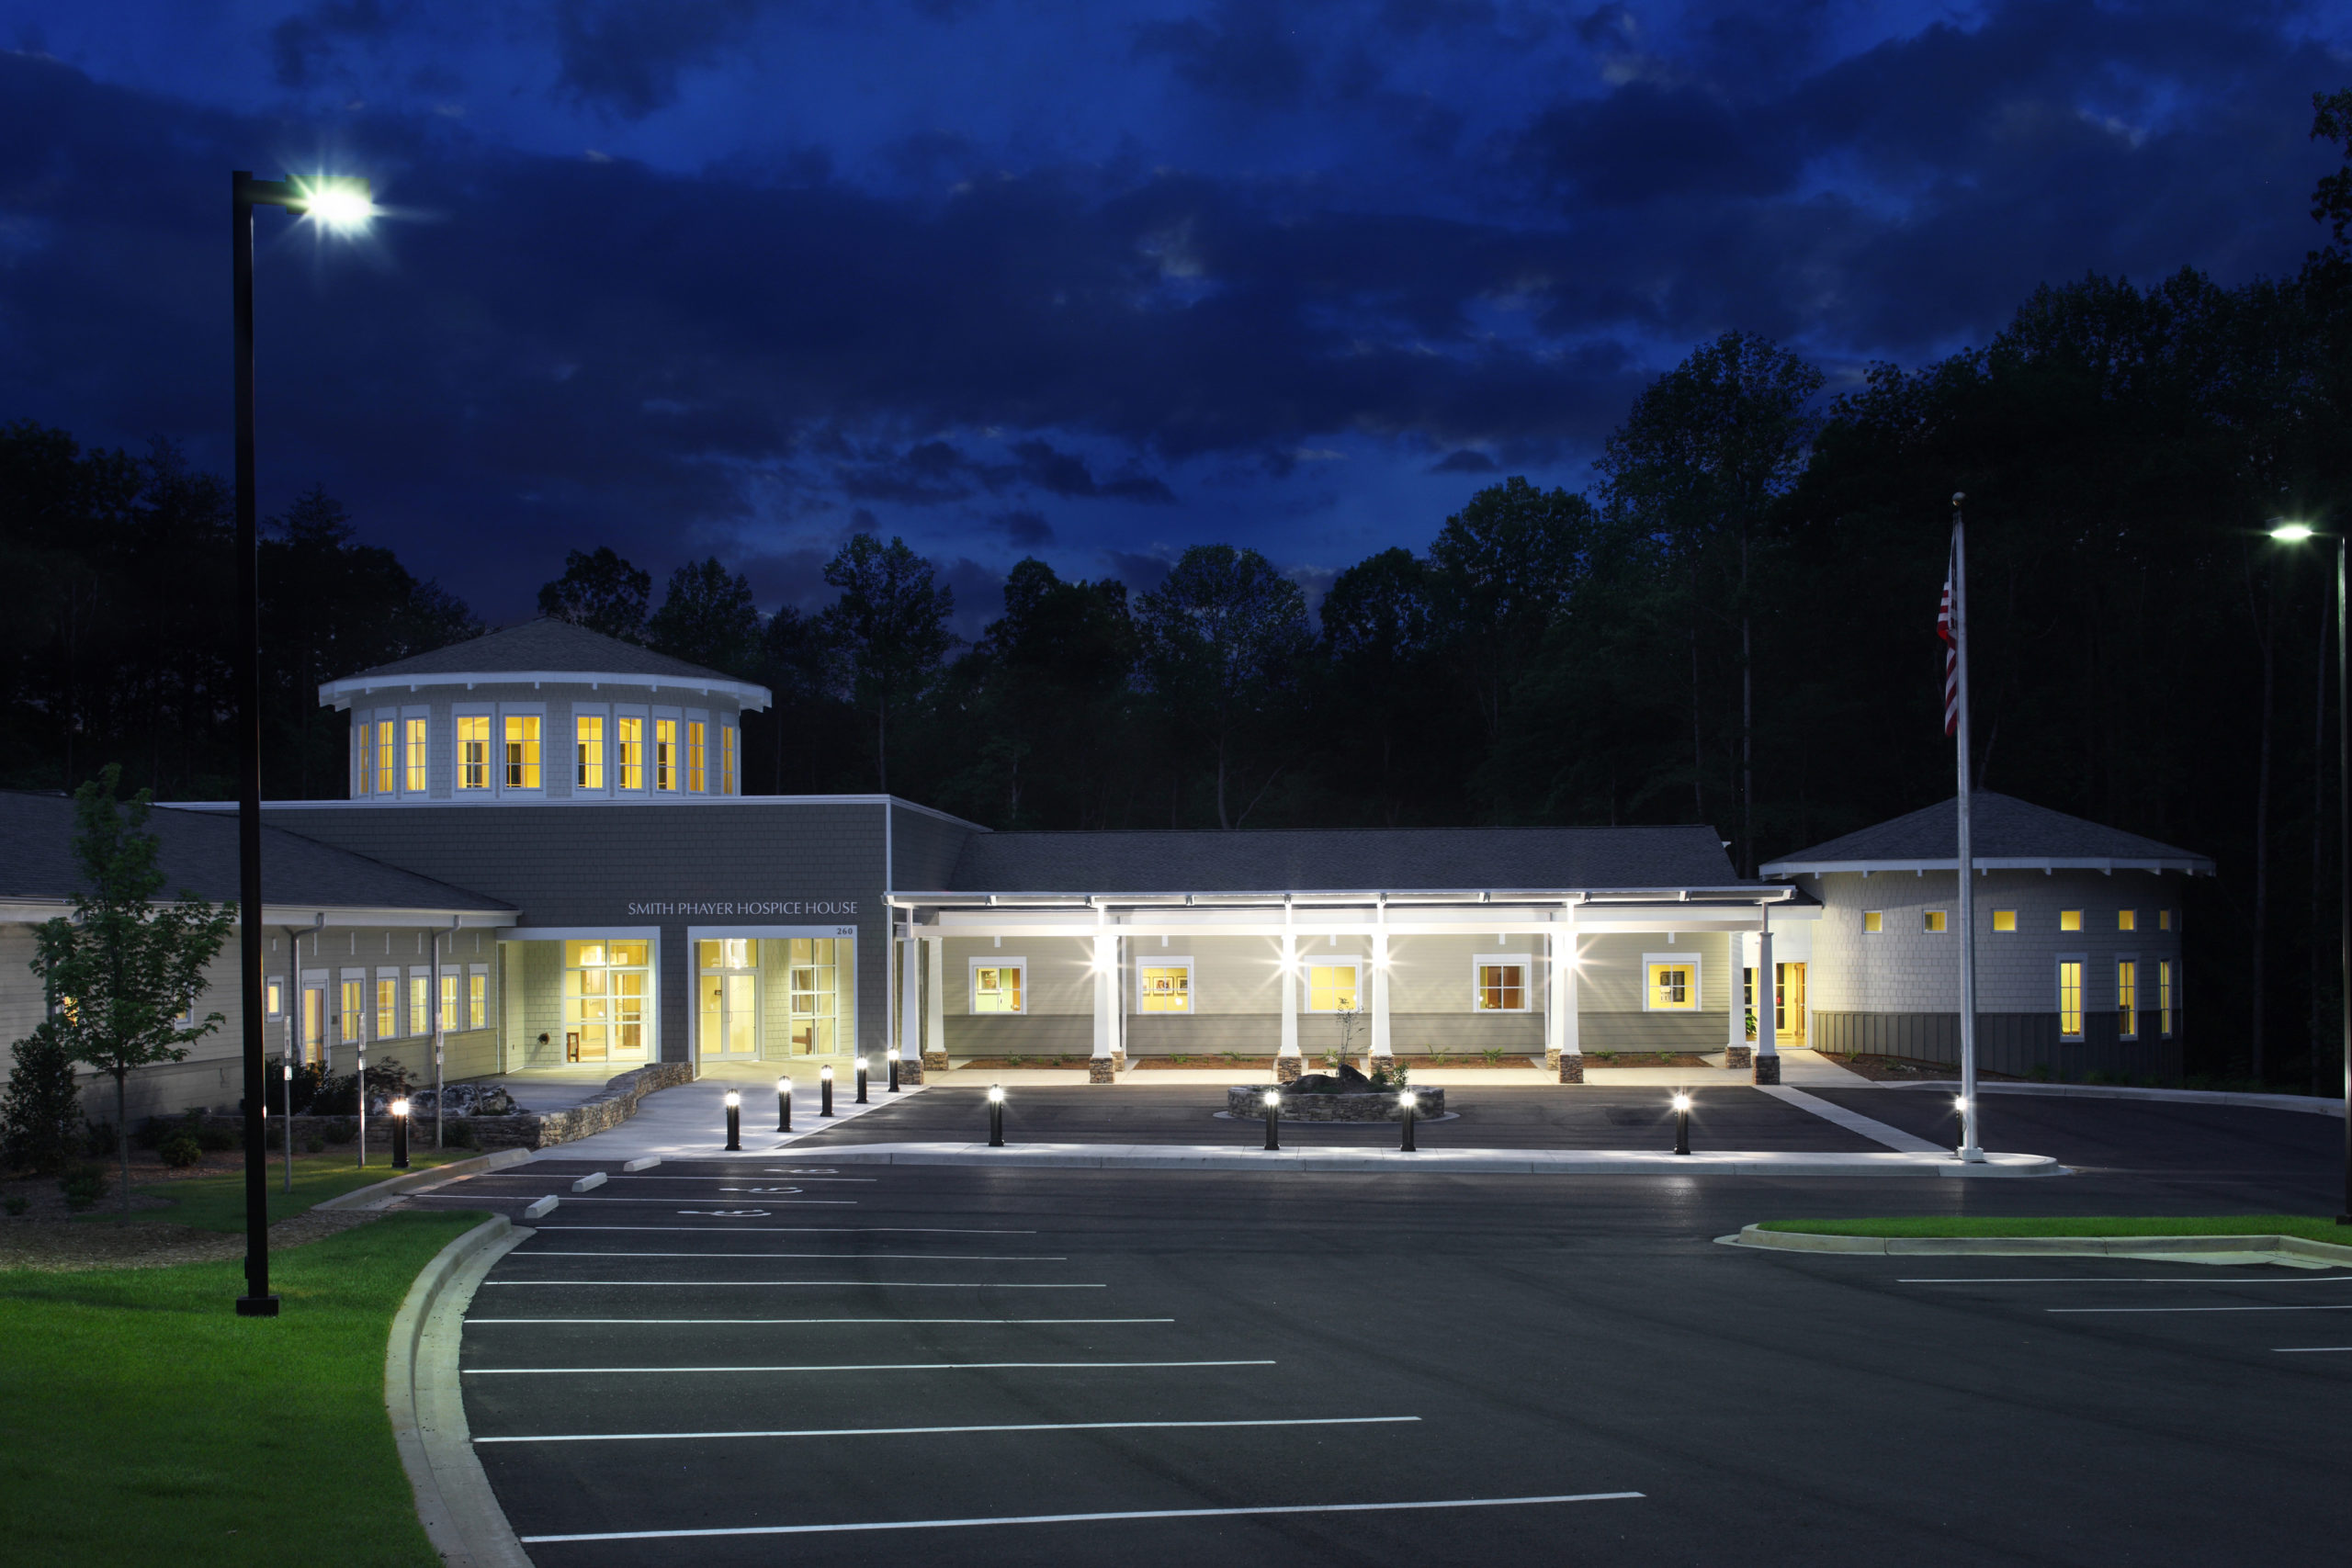 A photograph of the facility at night.